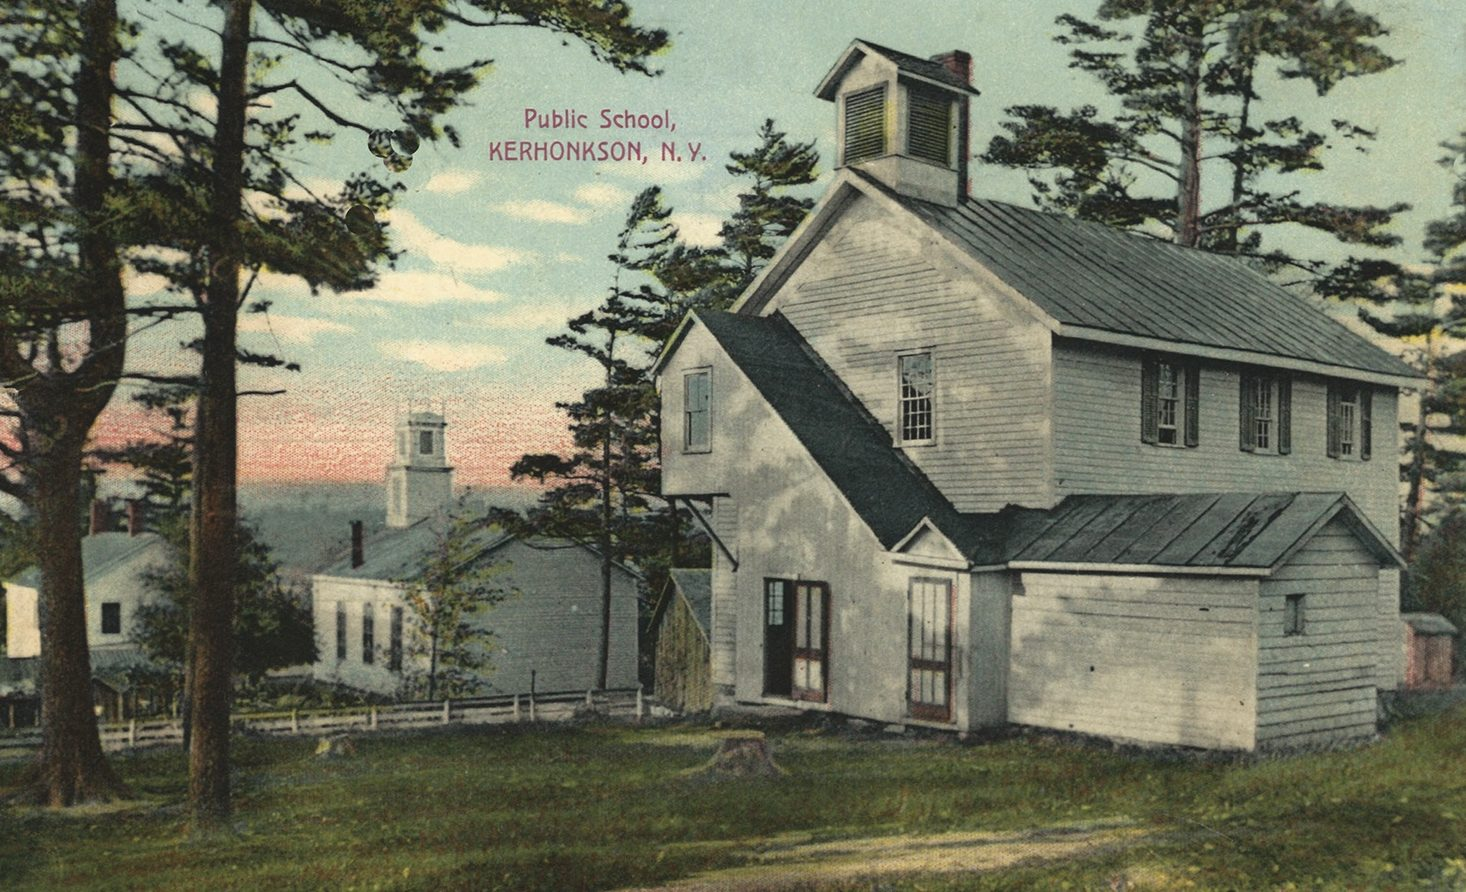 """The Public School, Kerhonkson, NY,"" postcard was sent in 1908. The church in the background is the ""RD (Reformed Dutch) Church""."